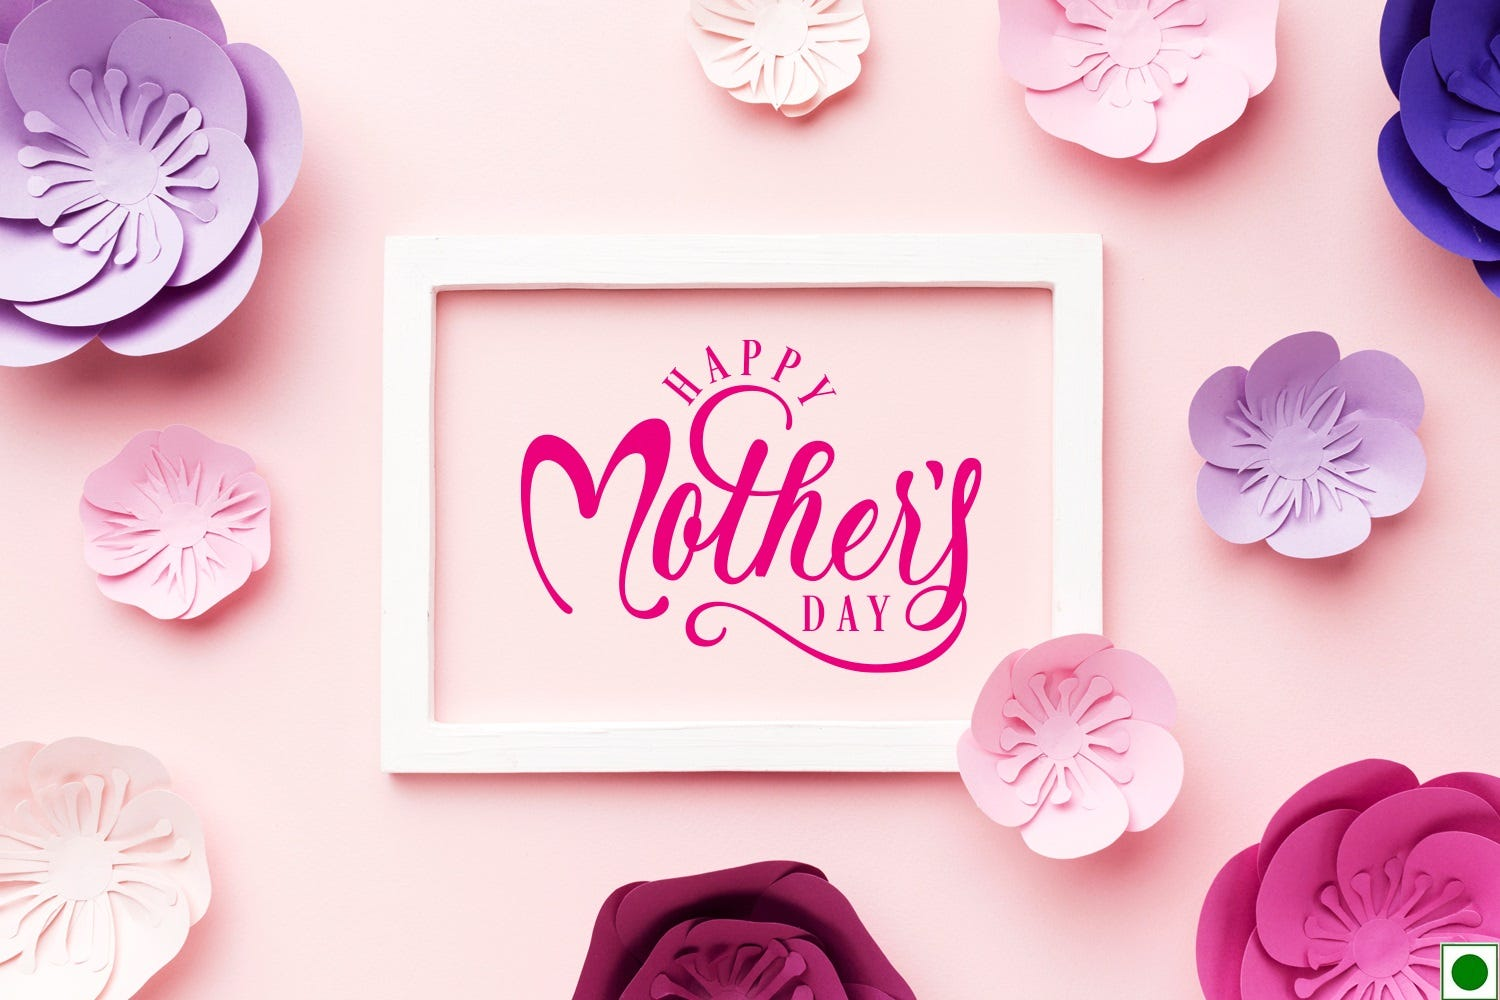 15 Mother's Day Messages & Gifts That Every Mom will Love